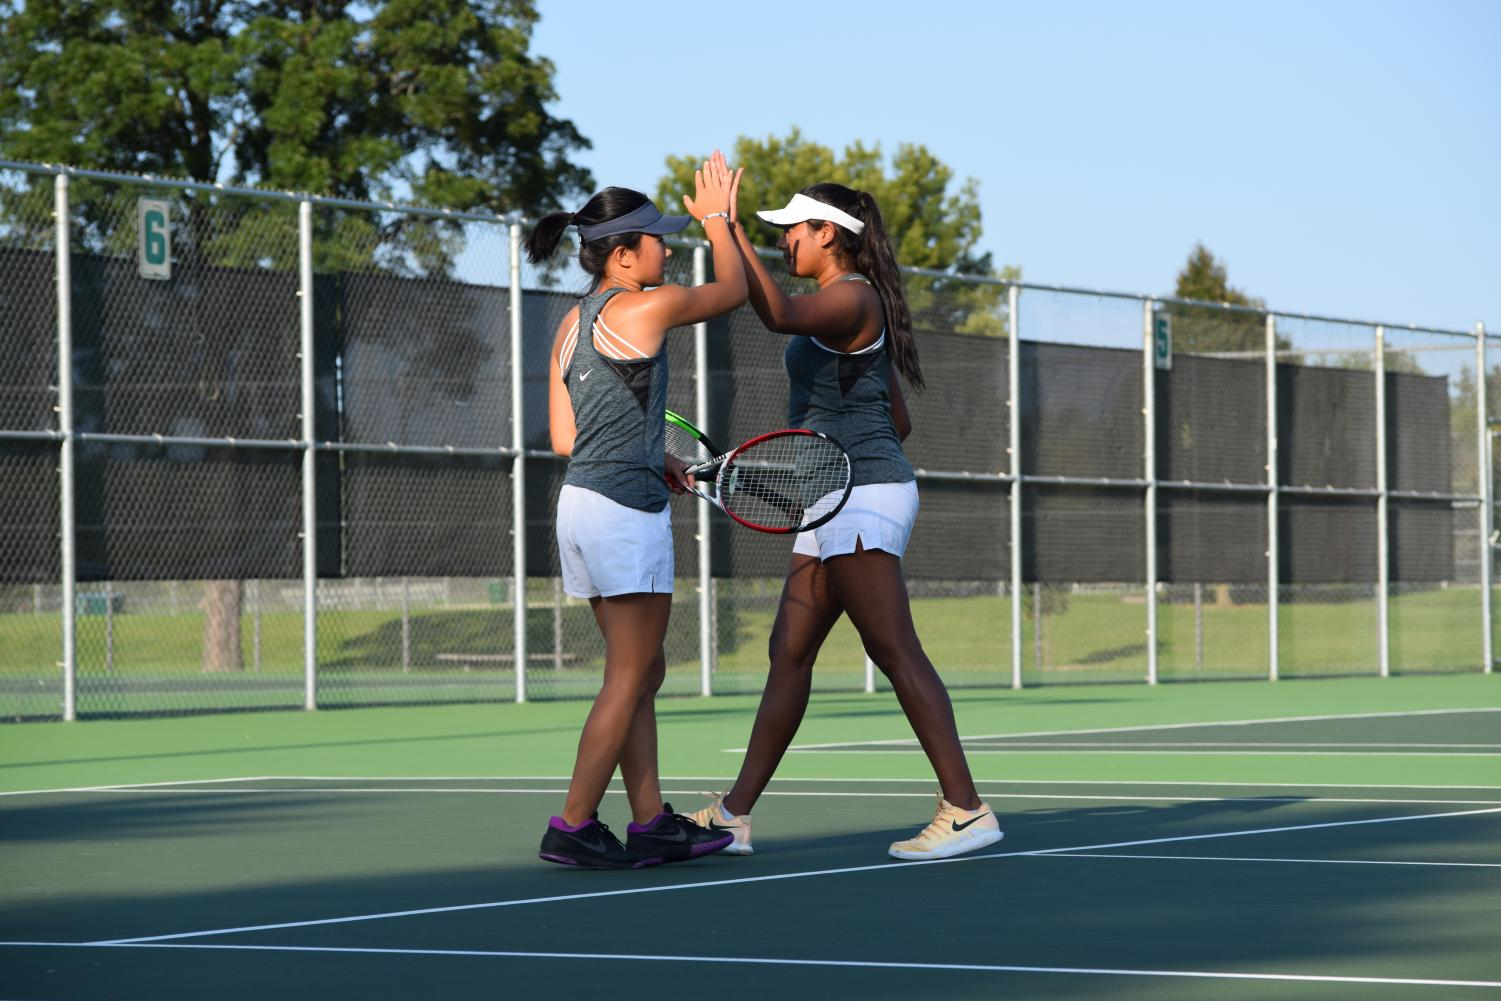 Varsity players Katherine Liu ('19) and Aafreen Sajid ('19) exchange high fives after a victorious doubles match on August 30.